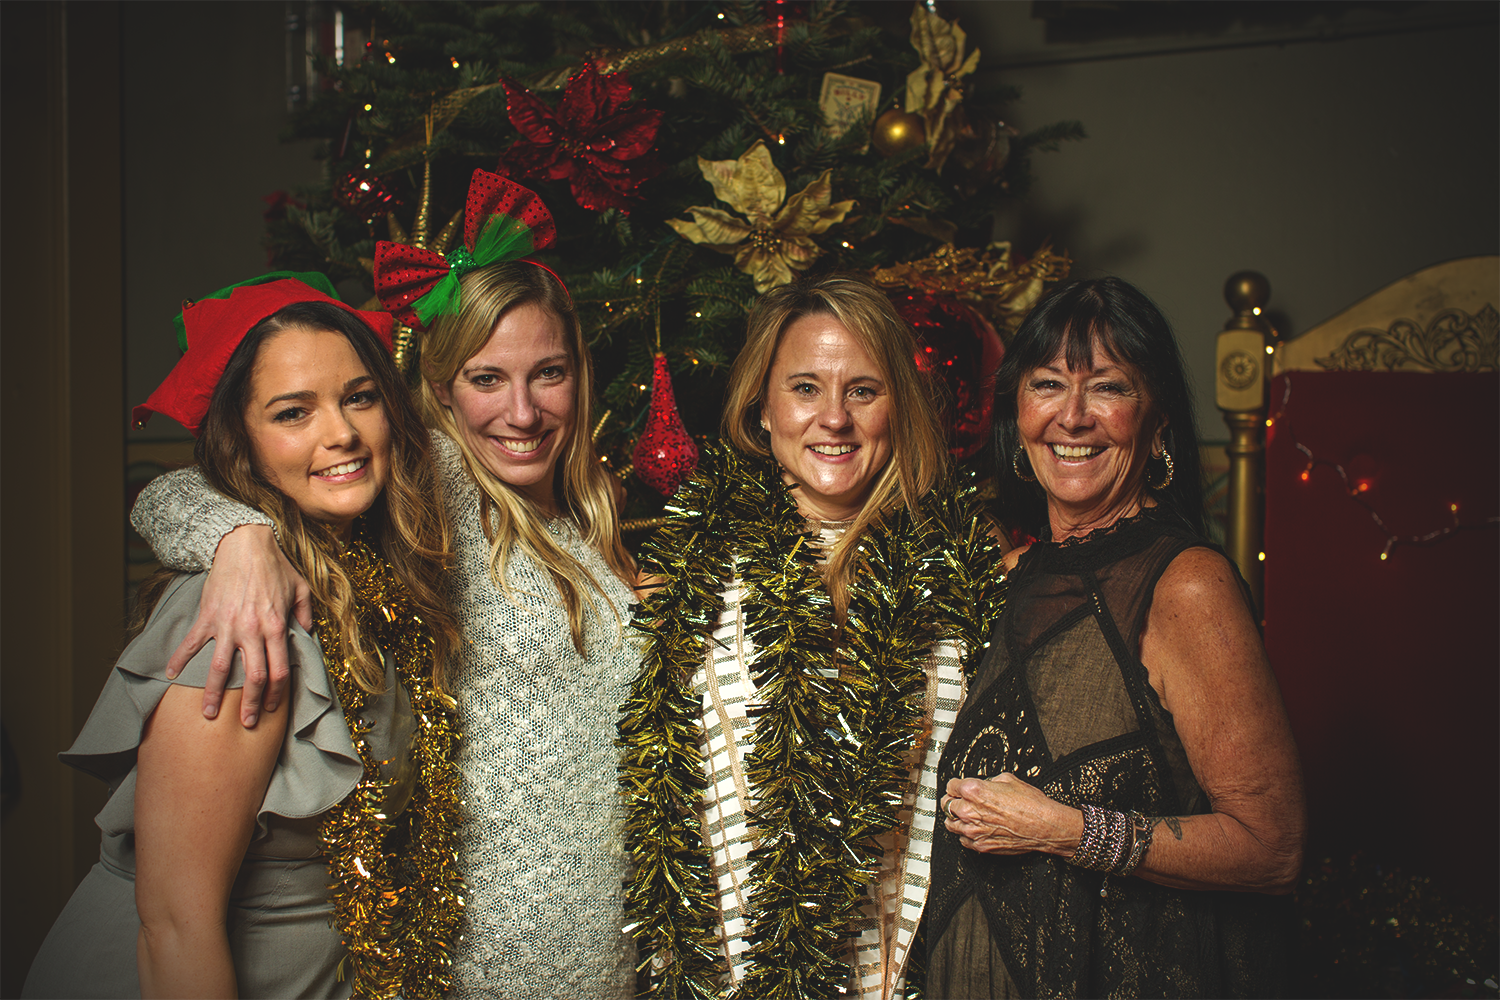 epproperties-vancouver-washington-xmas-party-photolga9.png